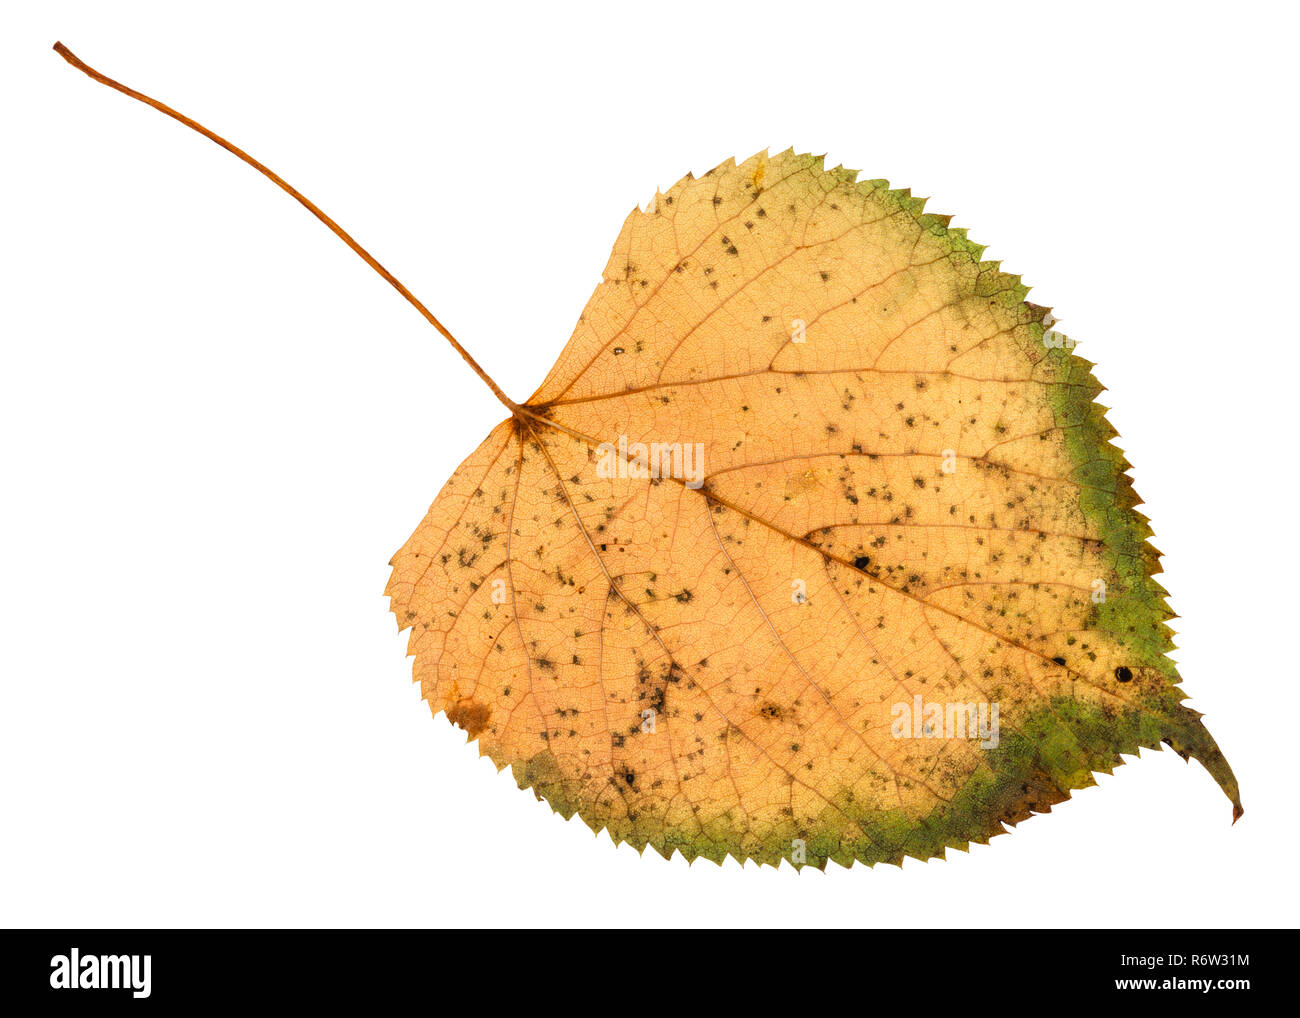 back side of fallen rotten leaf of linden tree Stock Photo